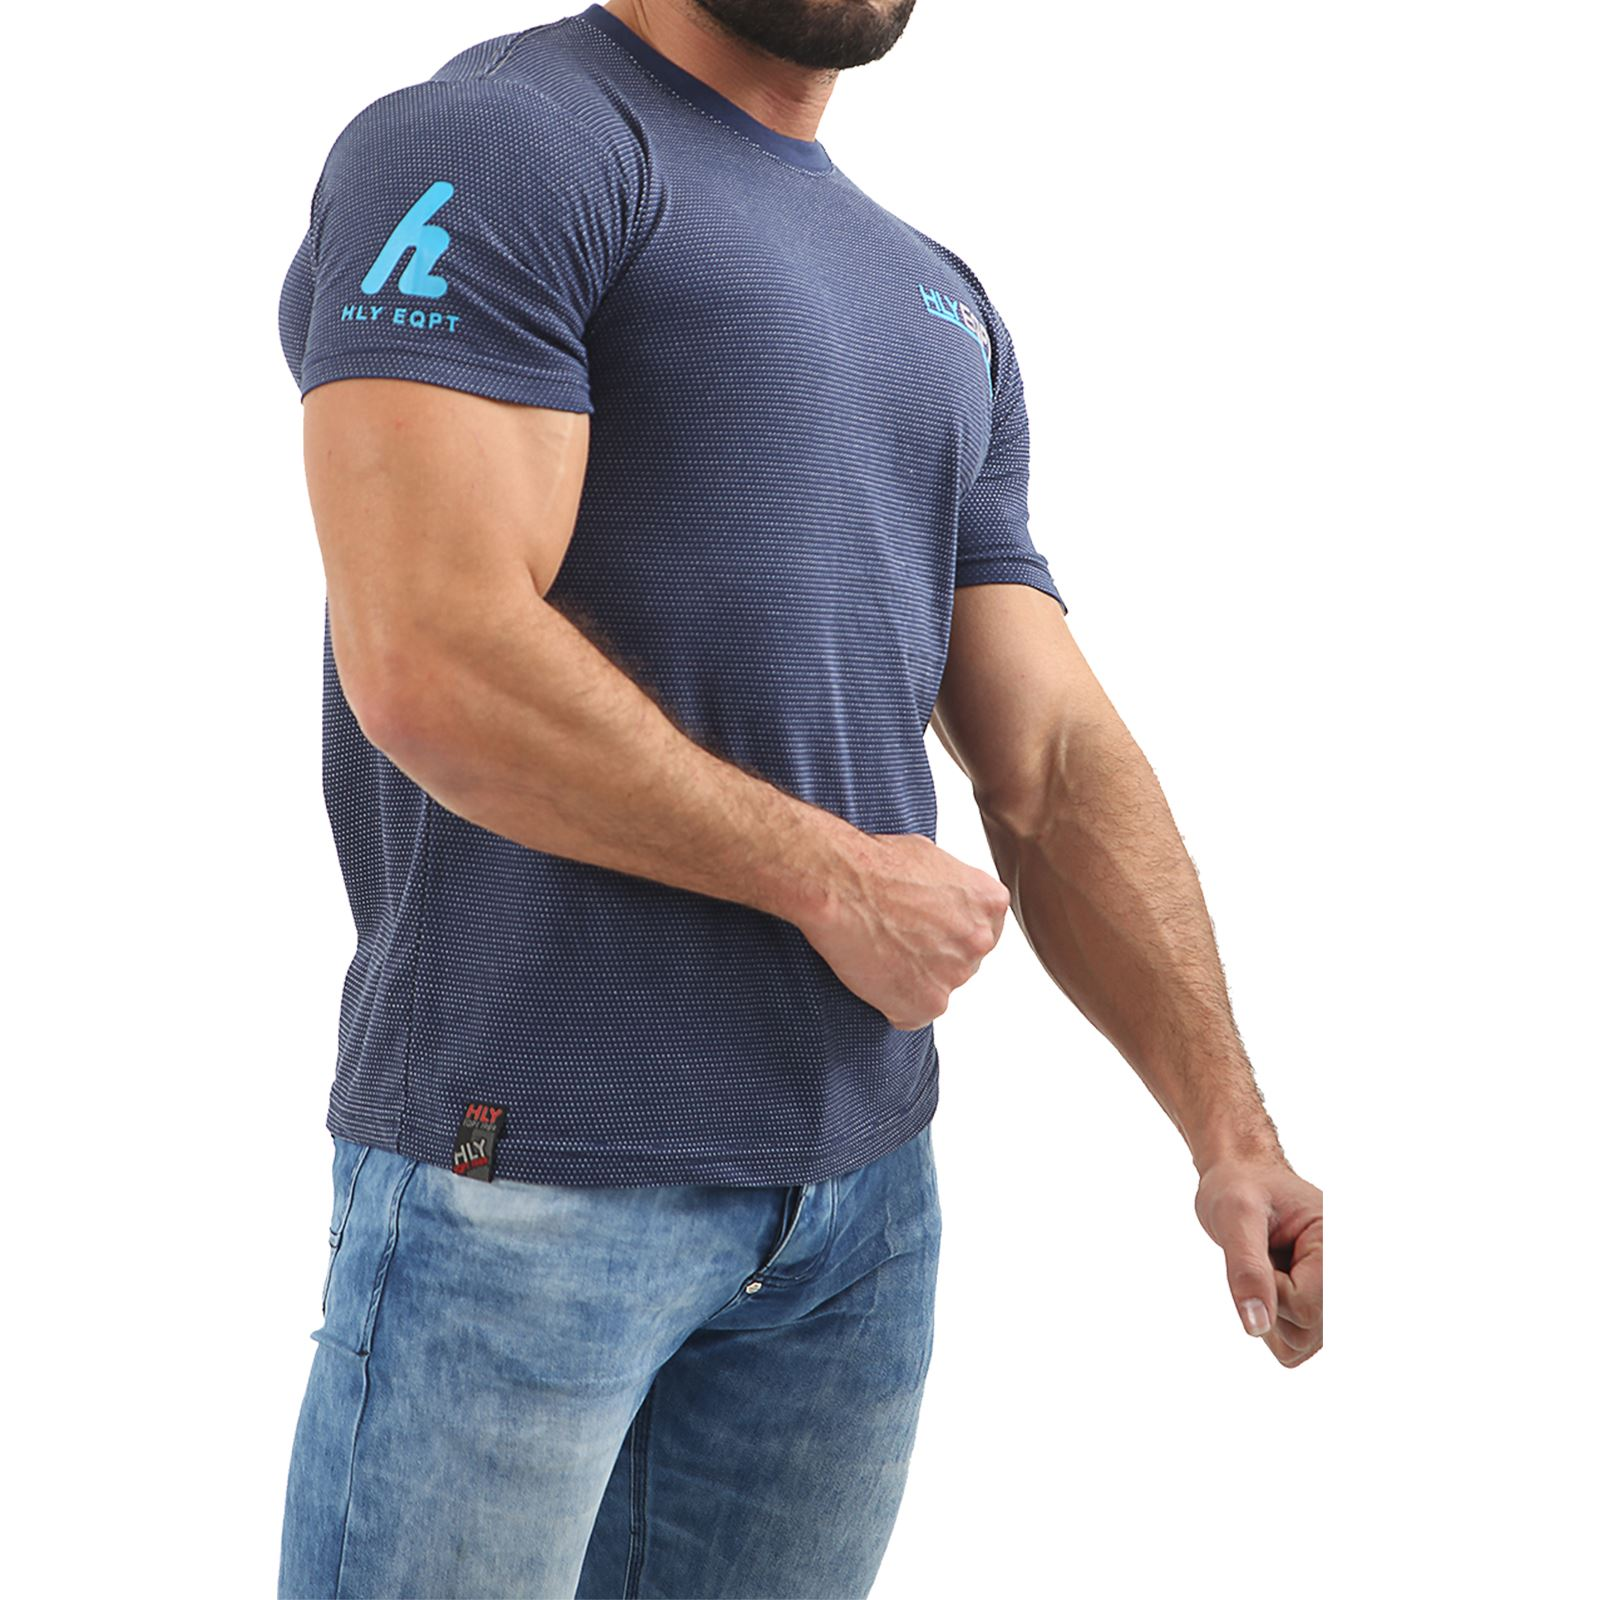 Mens-HLY-EQPT-Printed-T-Shirt-100-Cotton-Gym-Athletic-Training-Tee-Top-Summer thumbnail 36